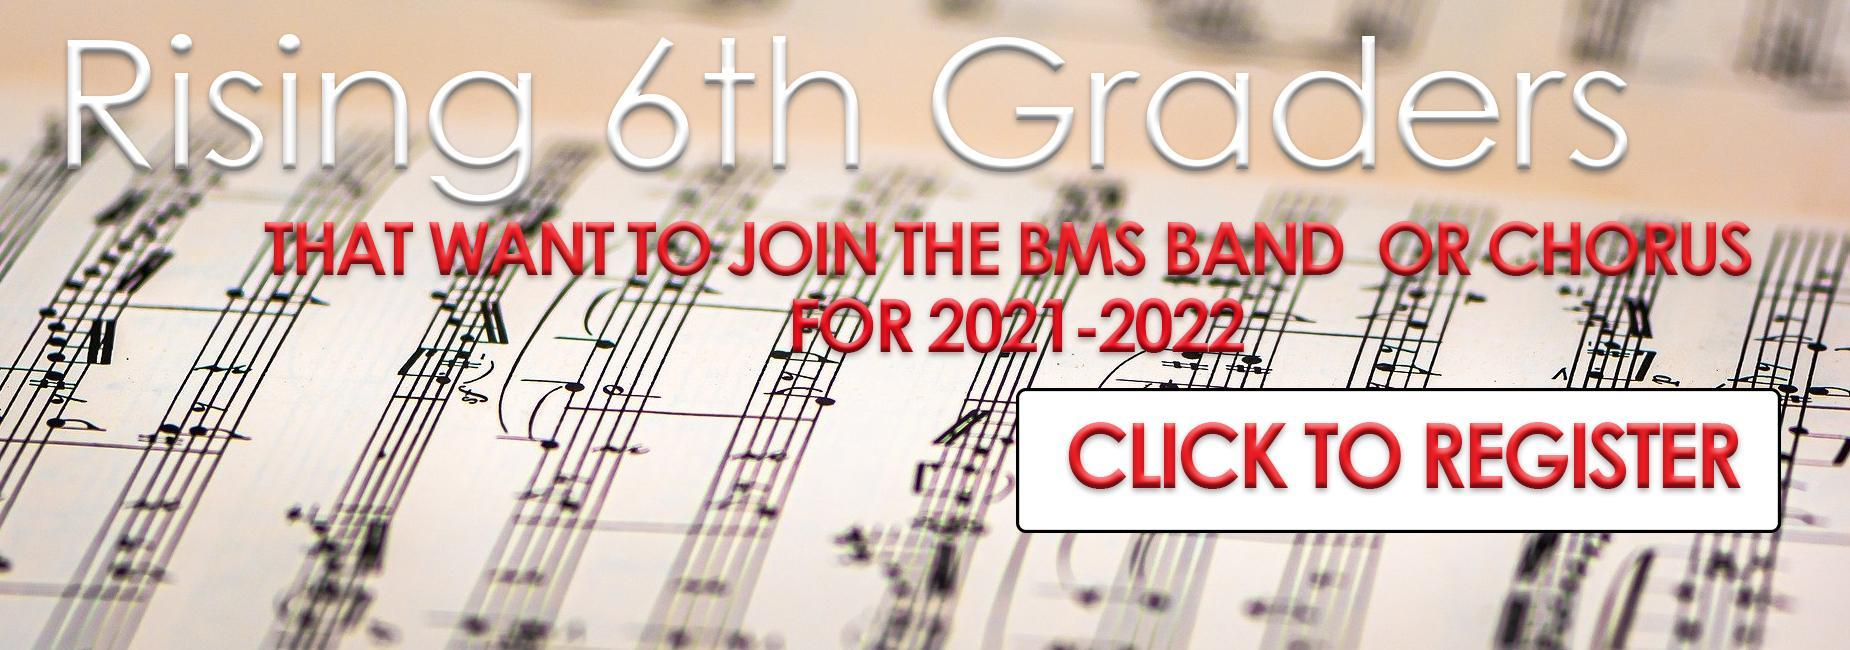 Rising 6th graders that want to join band or chorus click to register